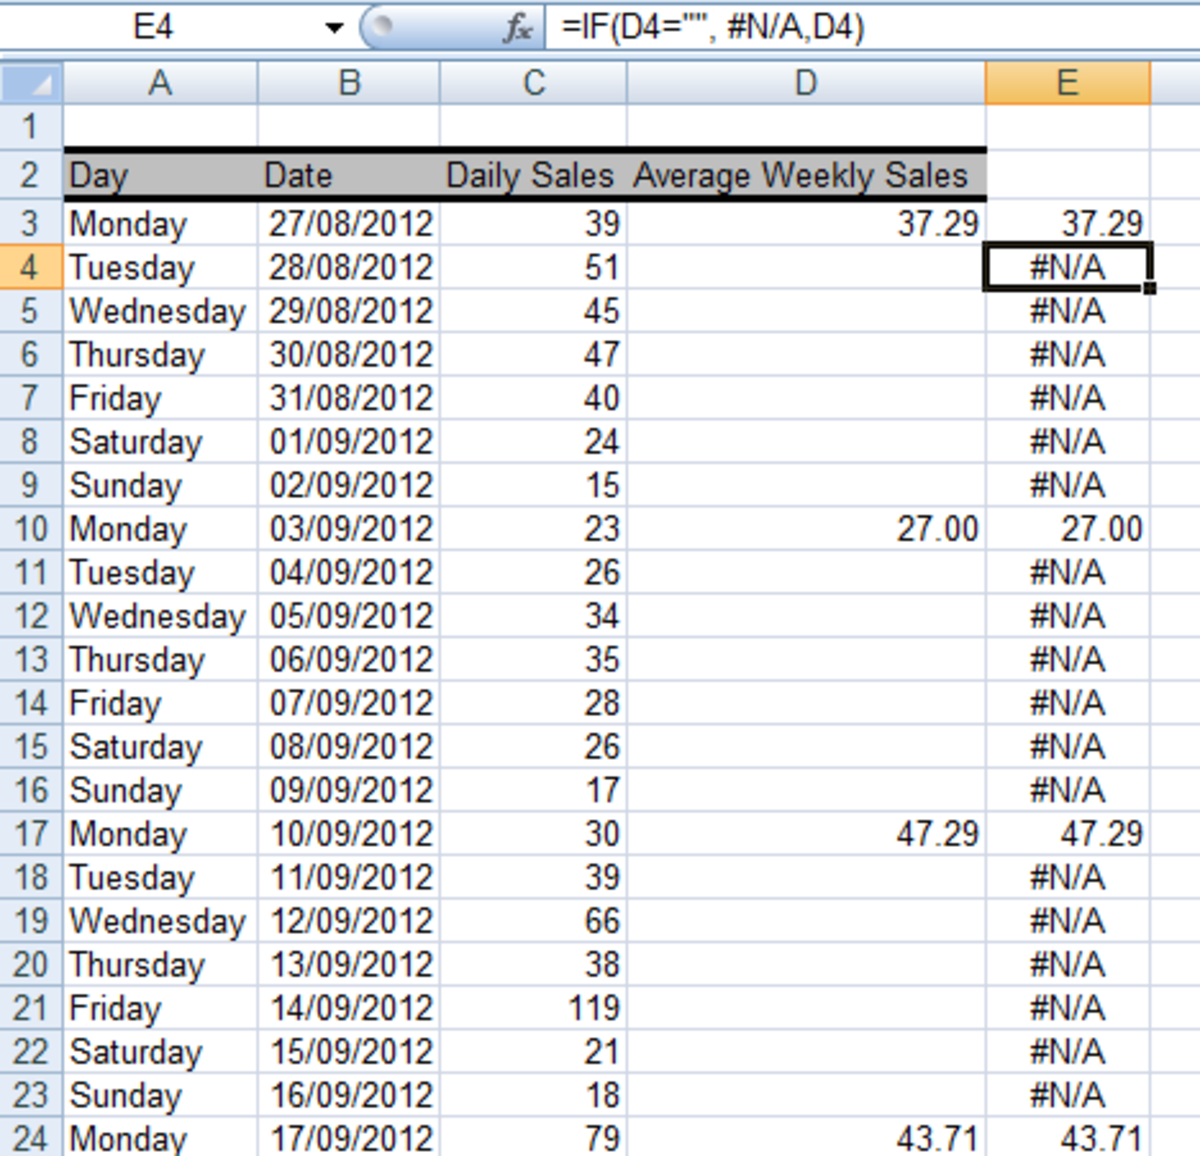 Ediblewildsus  Fascinating How To Get Excel  And  To Ignore Empty Cells In A Chart Or  With Licious Using The If Function In A Formula To Convert Empty Cells To Na With Delightful Work Breakdown Structure Plan Excel Also Select Range In Excel In Addition Excel Signature And Excel Shared As Well As Shortcut For Sum In Excel Additionally Cool Excel Macro Tricks From Turbofuturecom With Ediblewildsus  Licious How To Get Excel  And  To Ignore Empty Cells In A Chart Or  With Delightful Using The If Function In A Formula To Convert Empty Cells To Na And Fascinating Work Breakdown Structure Plan Excel Also Select Range In Excel In Addition Excel Signature From Turbofuturecom